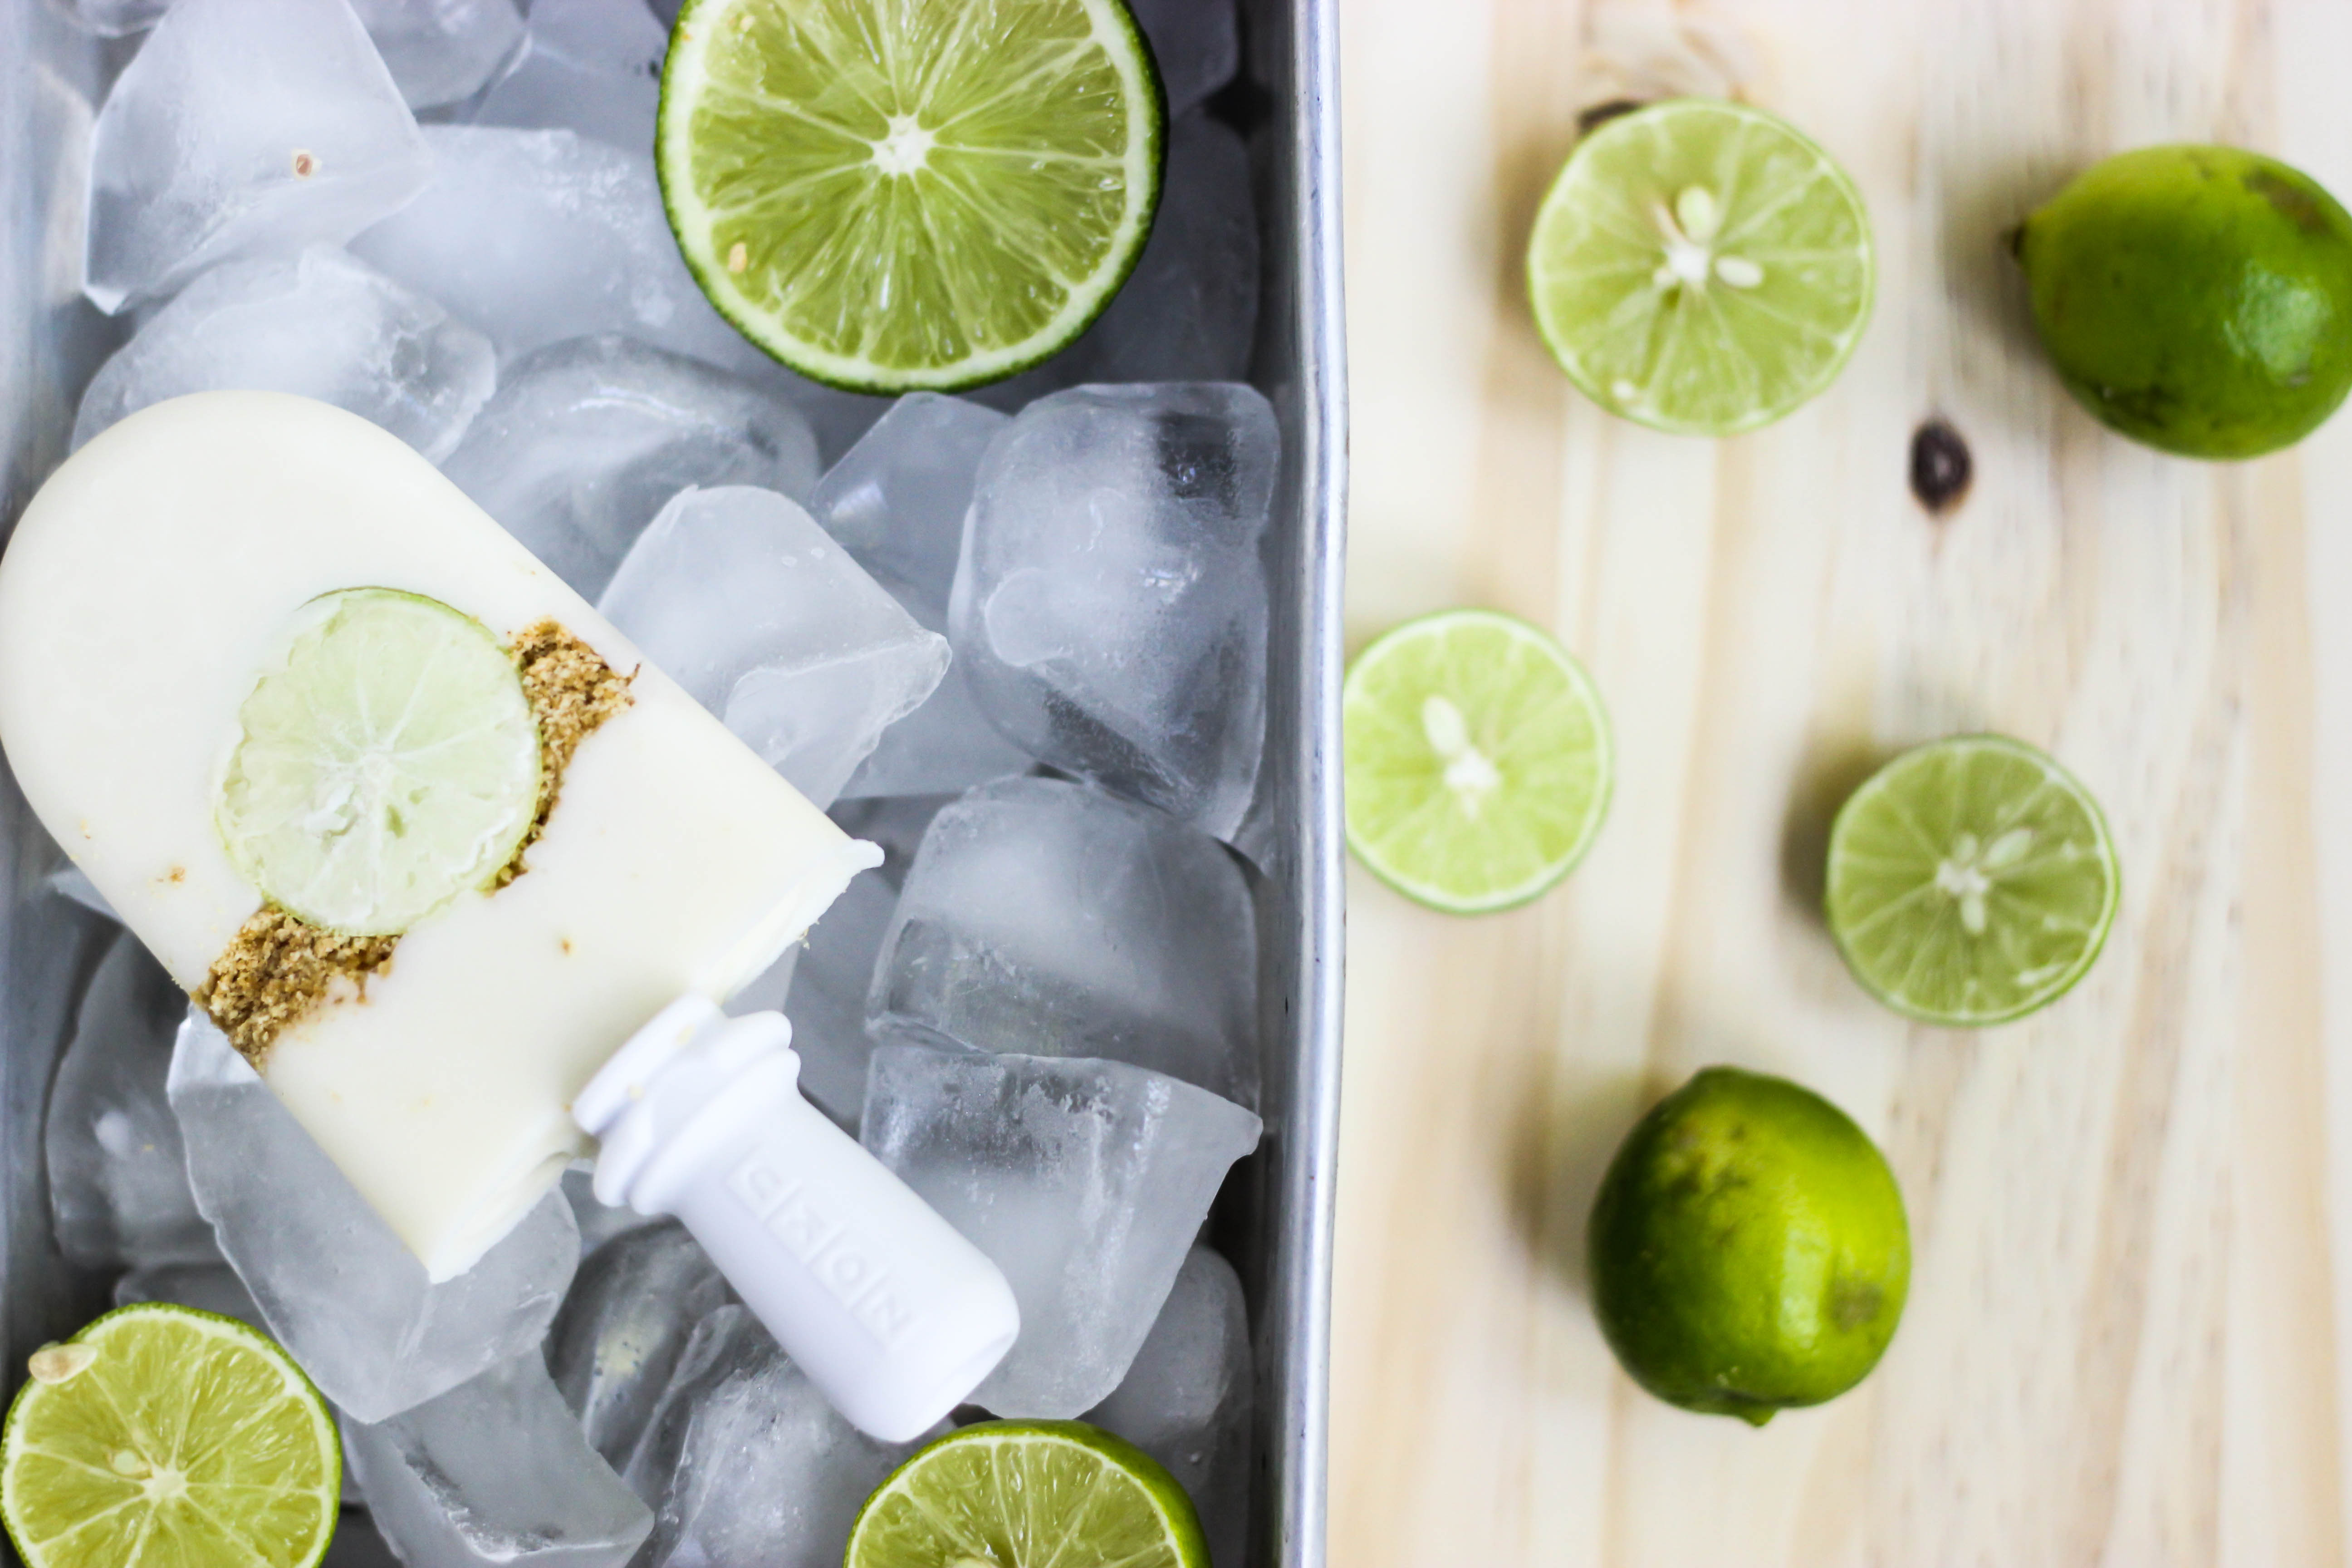 Key Lime Pie Ice Pops – if the spoon fits